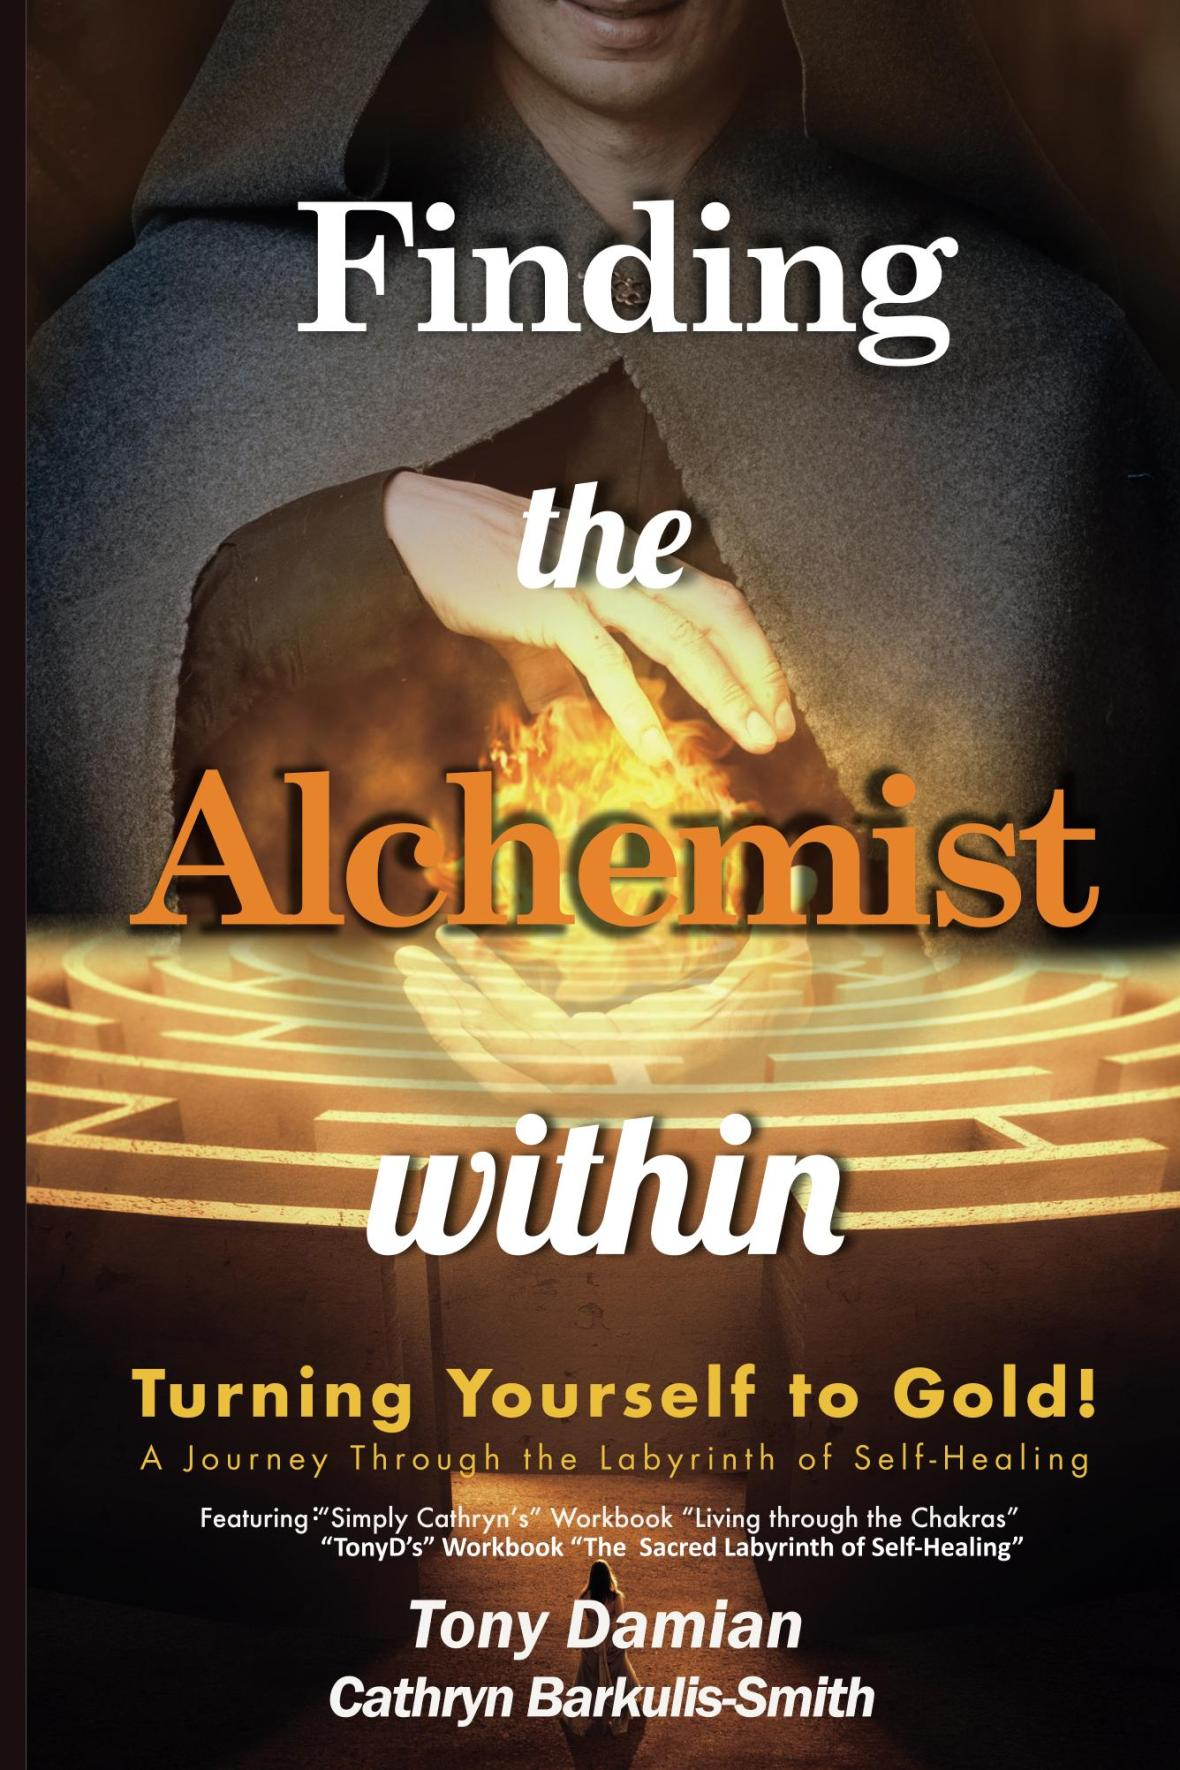 Finding_the_Alchemis_Cover_for_Kindle